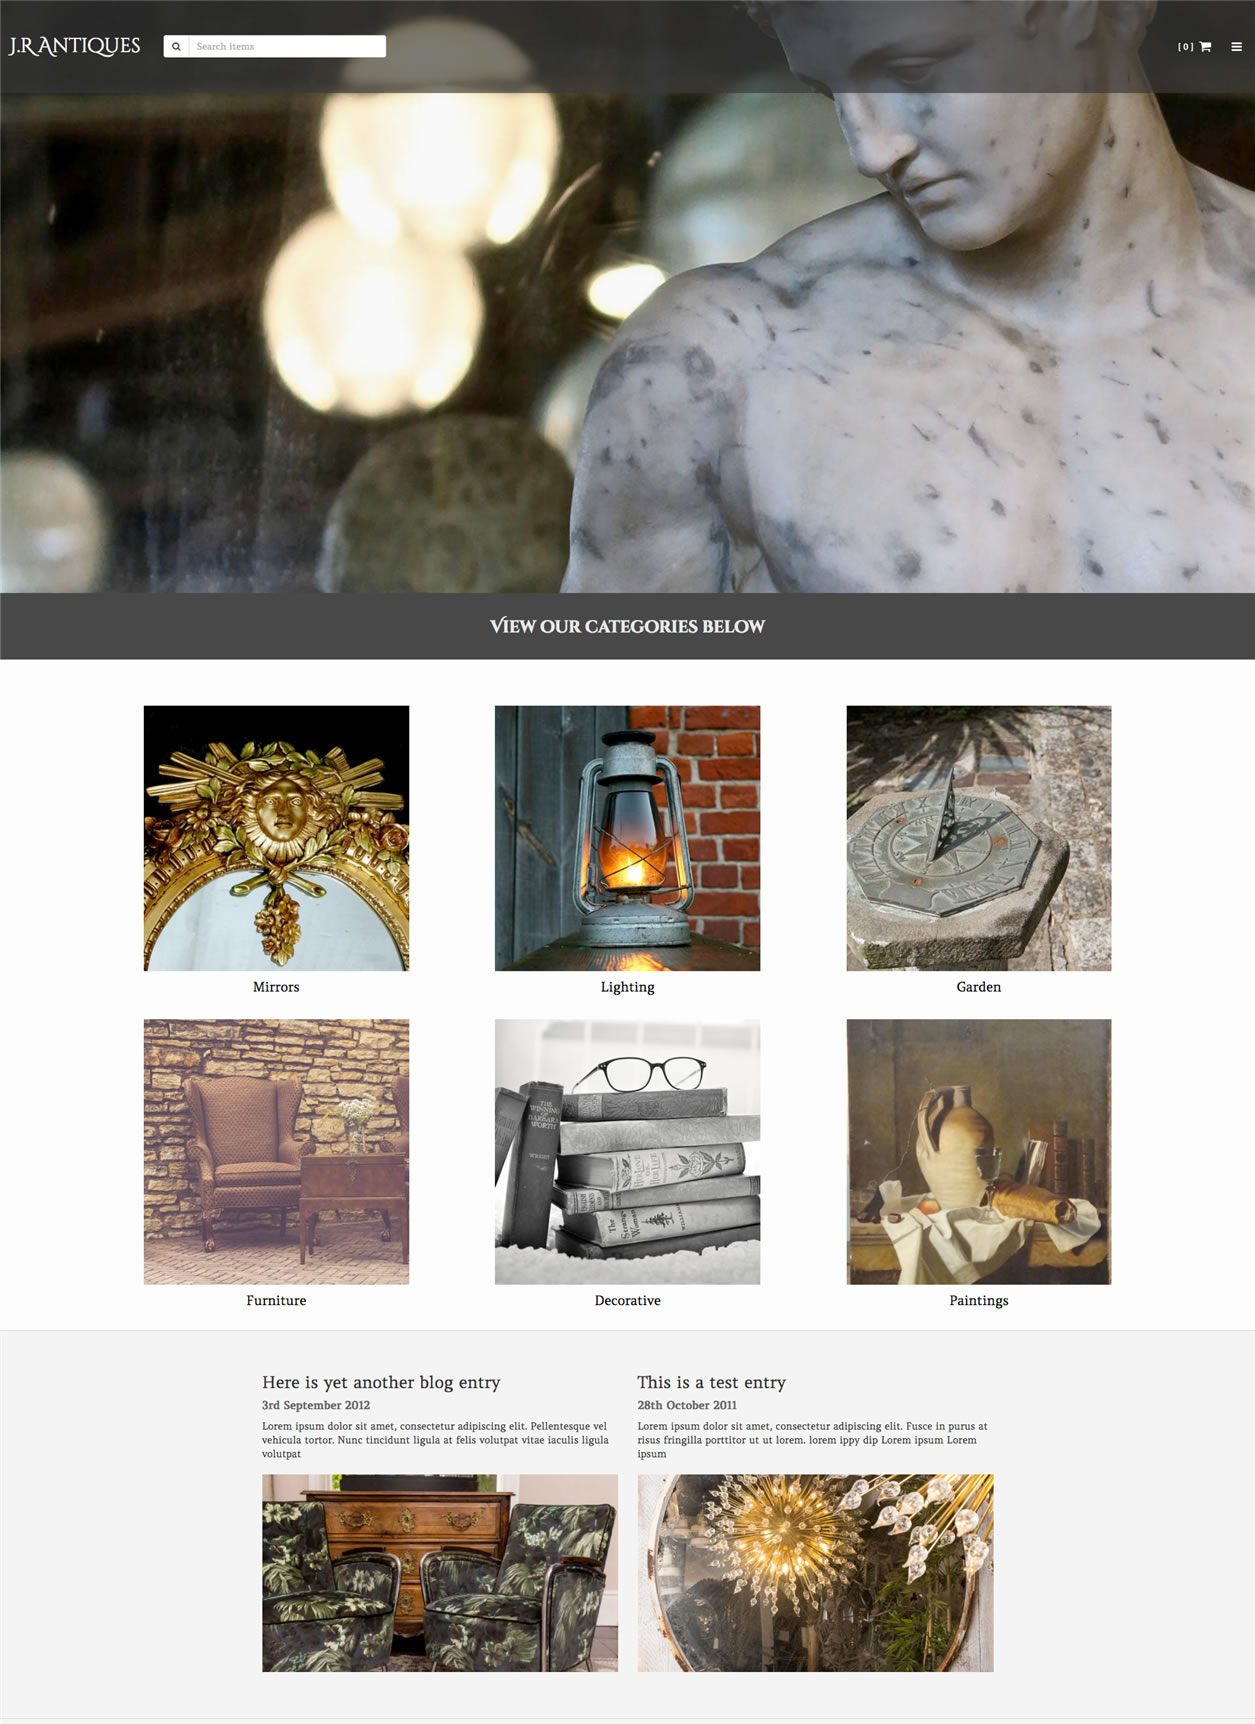 Antiques Web design examplePygmy